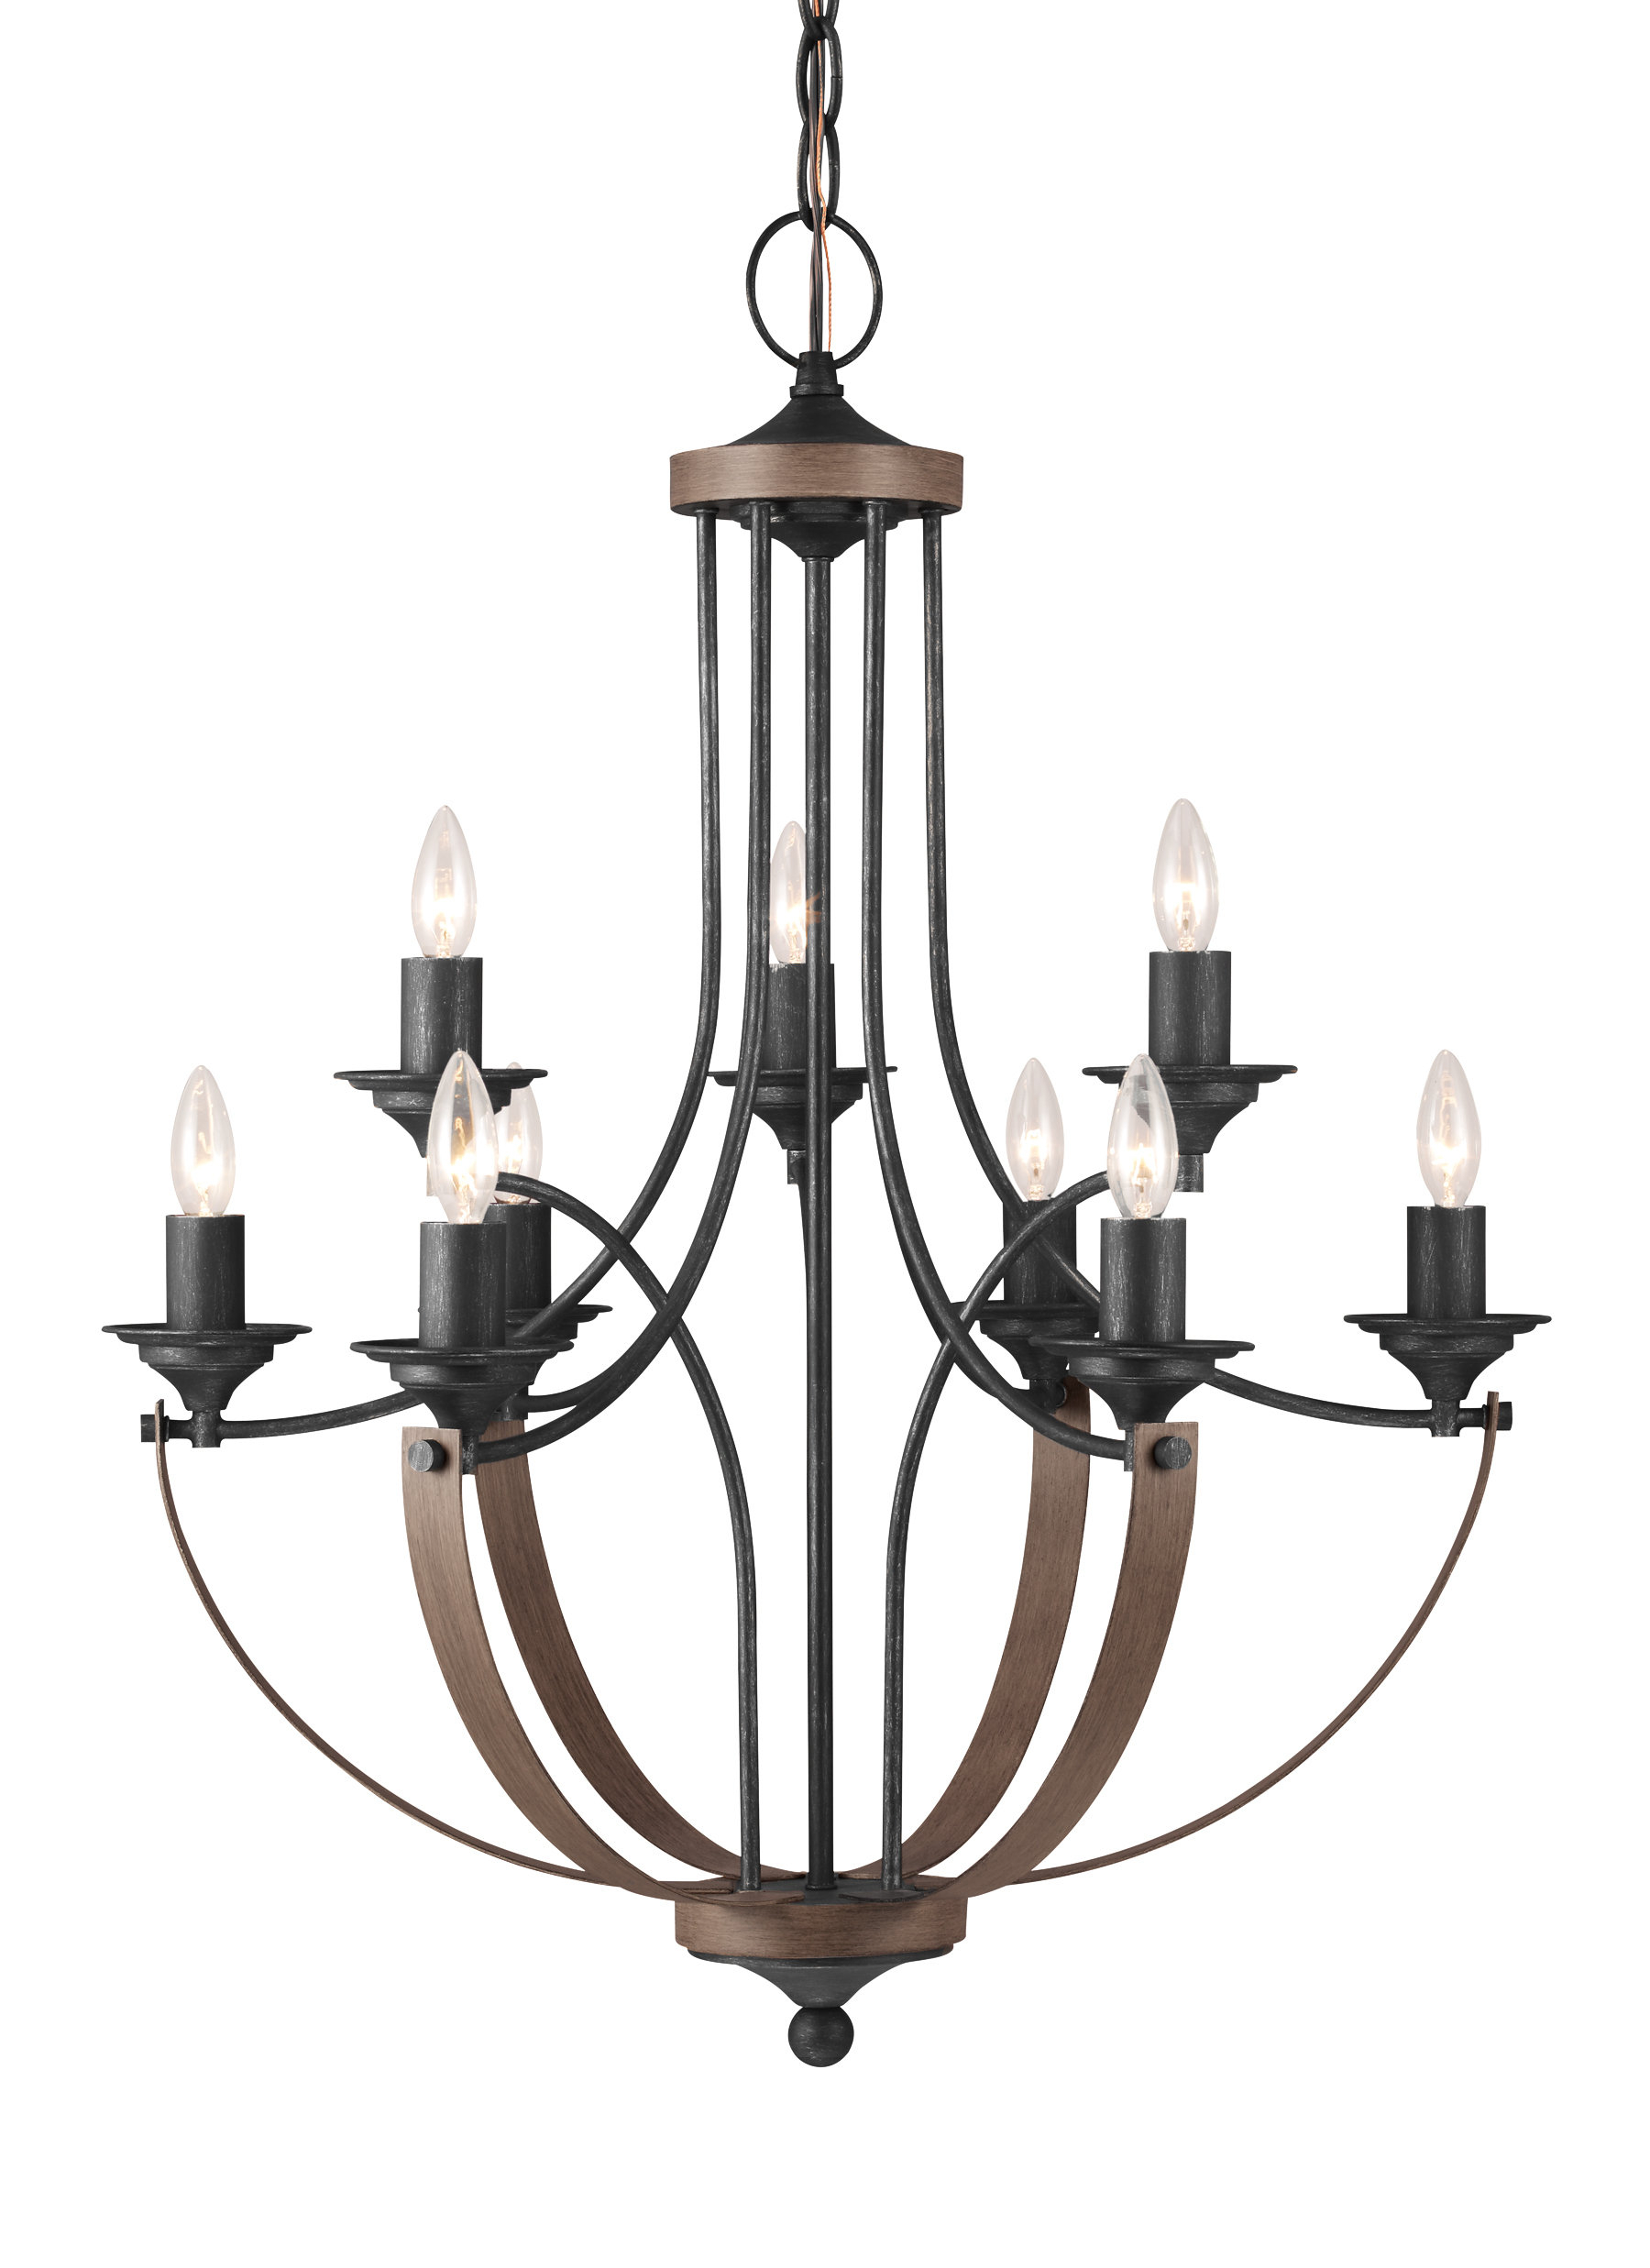 Camilla 9 Light Candle Style Chandelier With Regard To Newest Giverny 9 Light Candle Style Chandeliers (View 9 of 20)